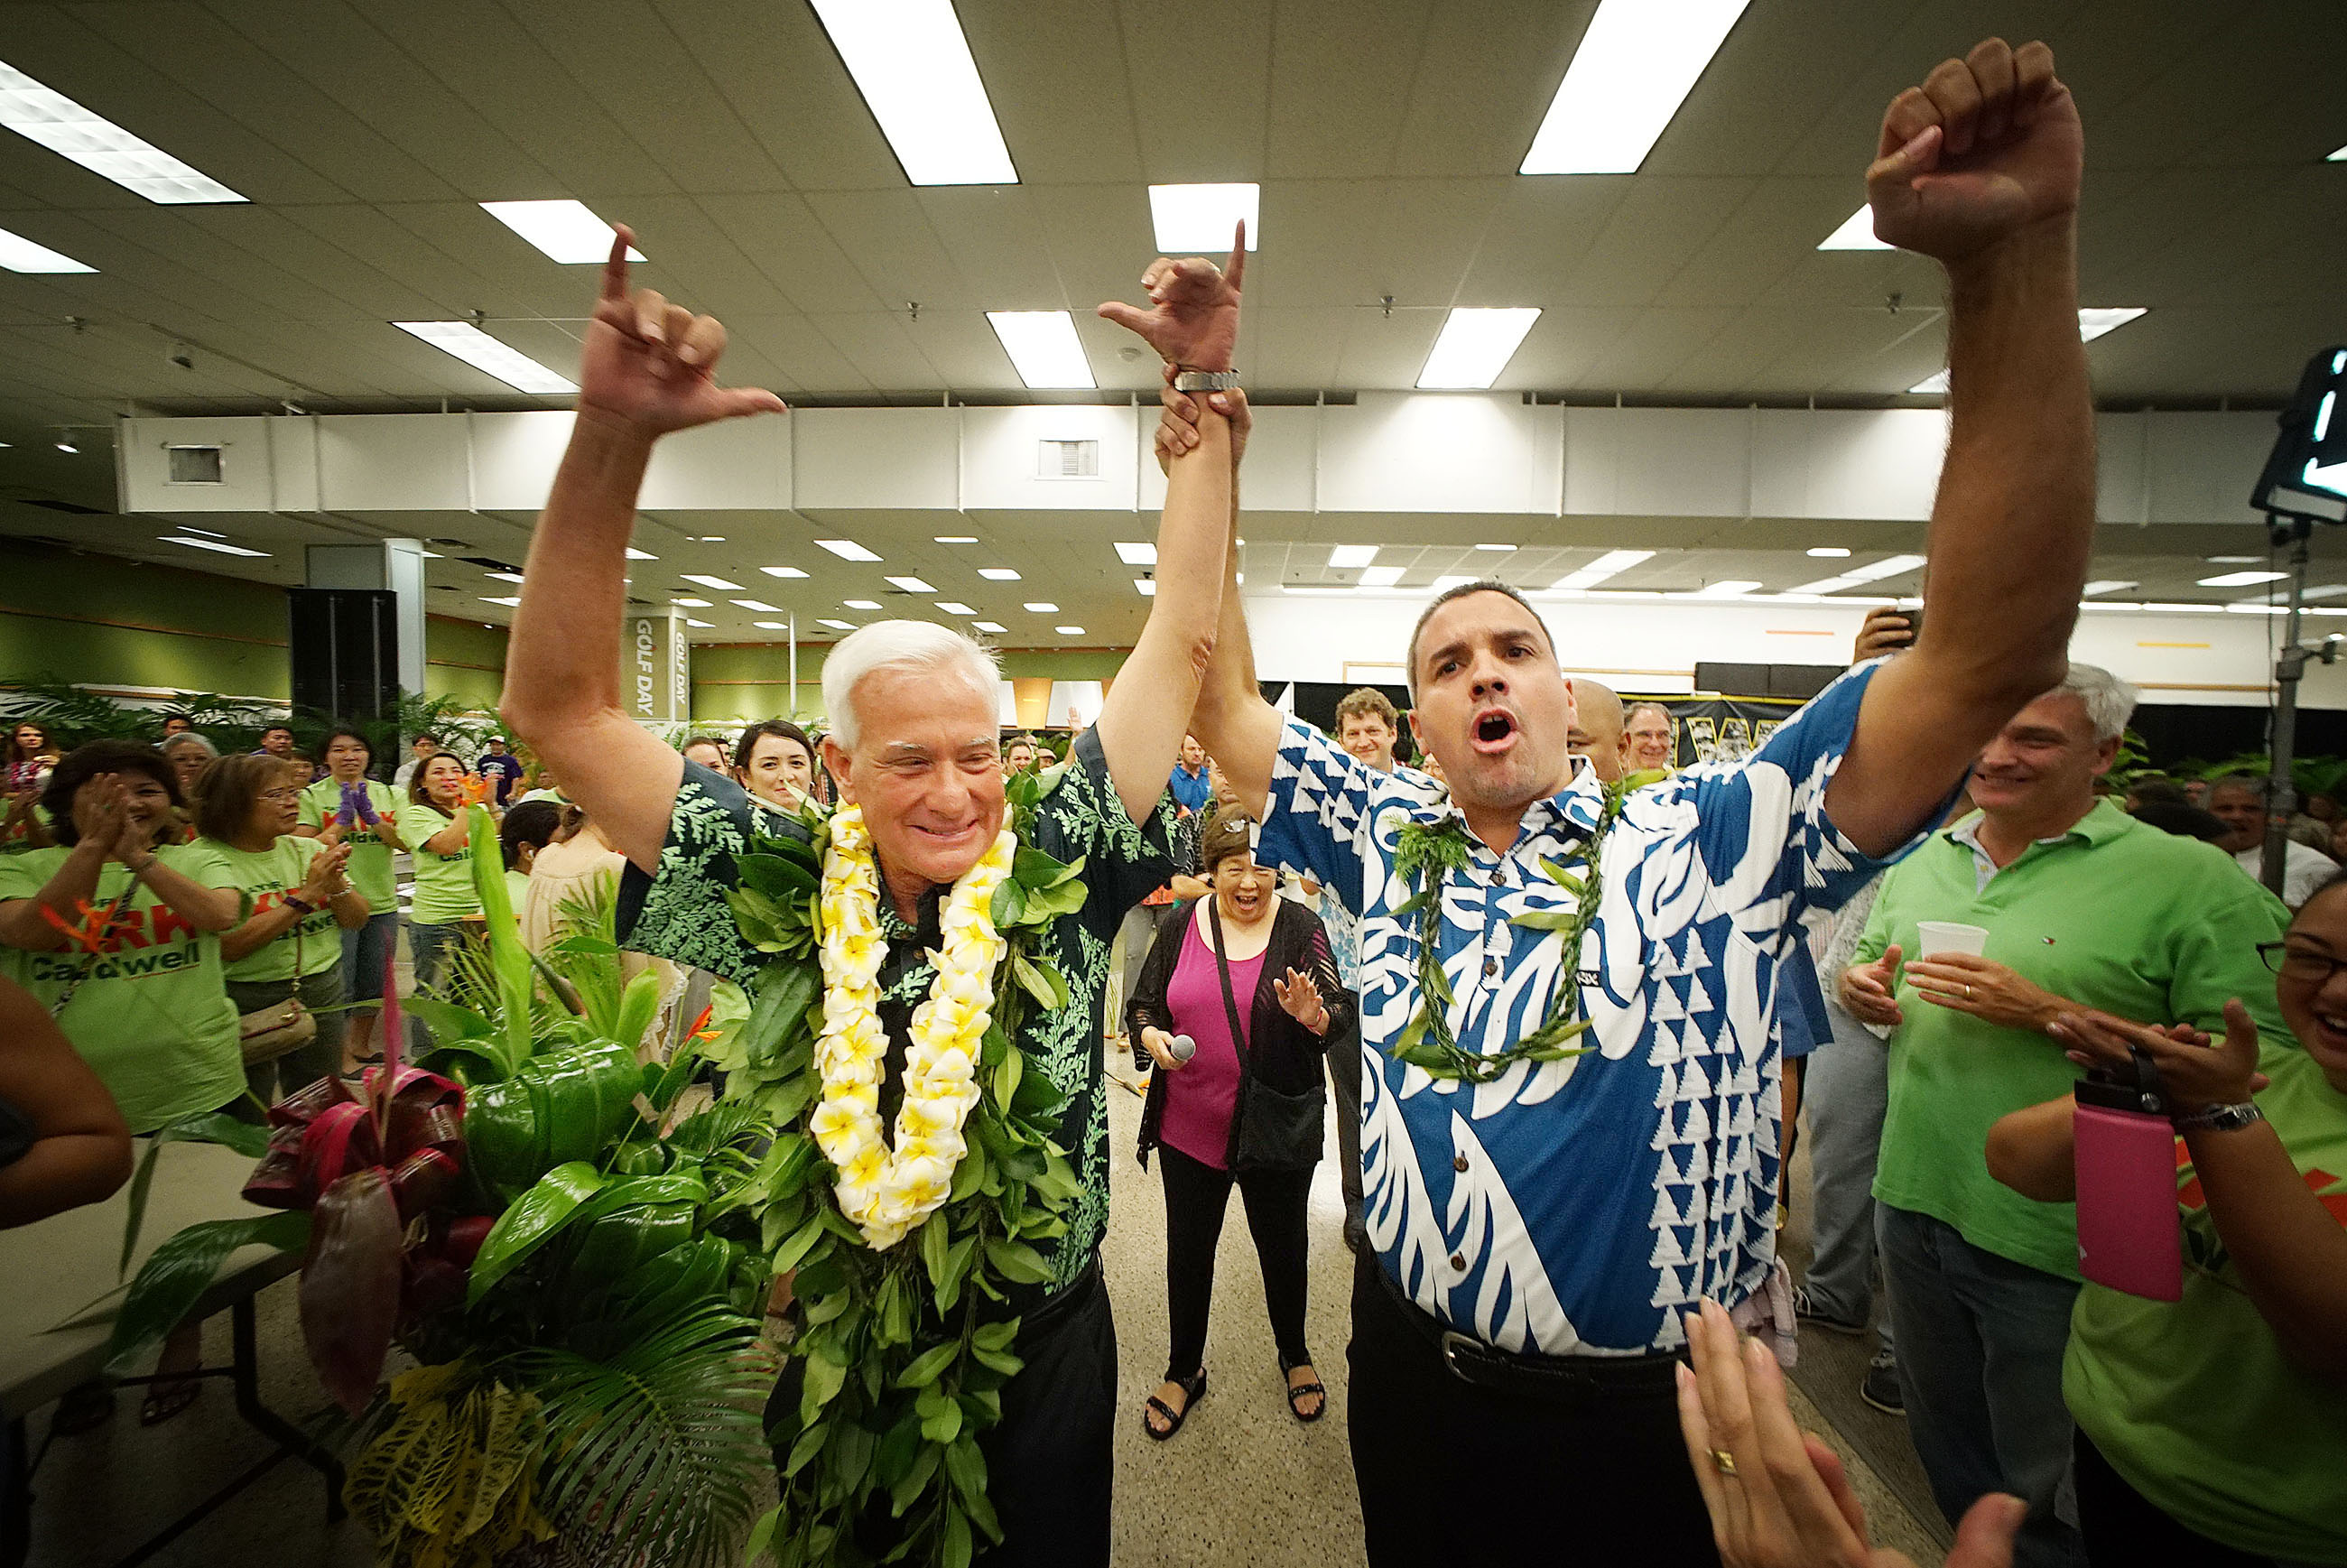 <p>On his way to re-election, Mayor Kirk Caldwell raised arms with City Councilman Ikaika Anderson as returns came in. — Cory Lum/Civil Beat</p>